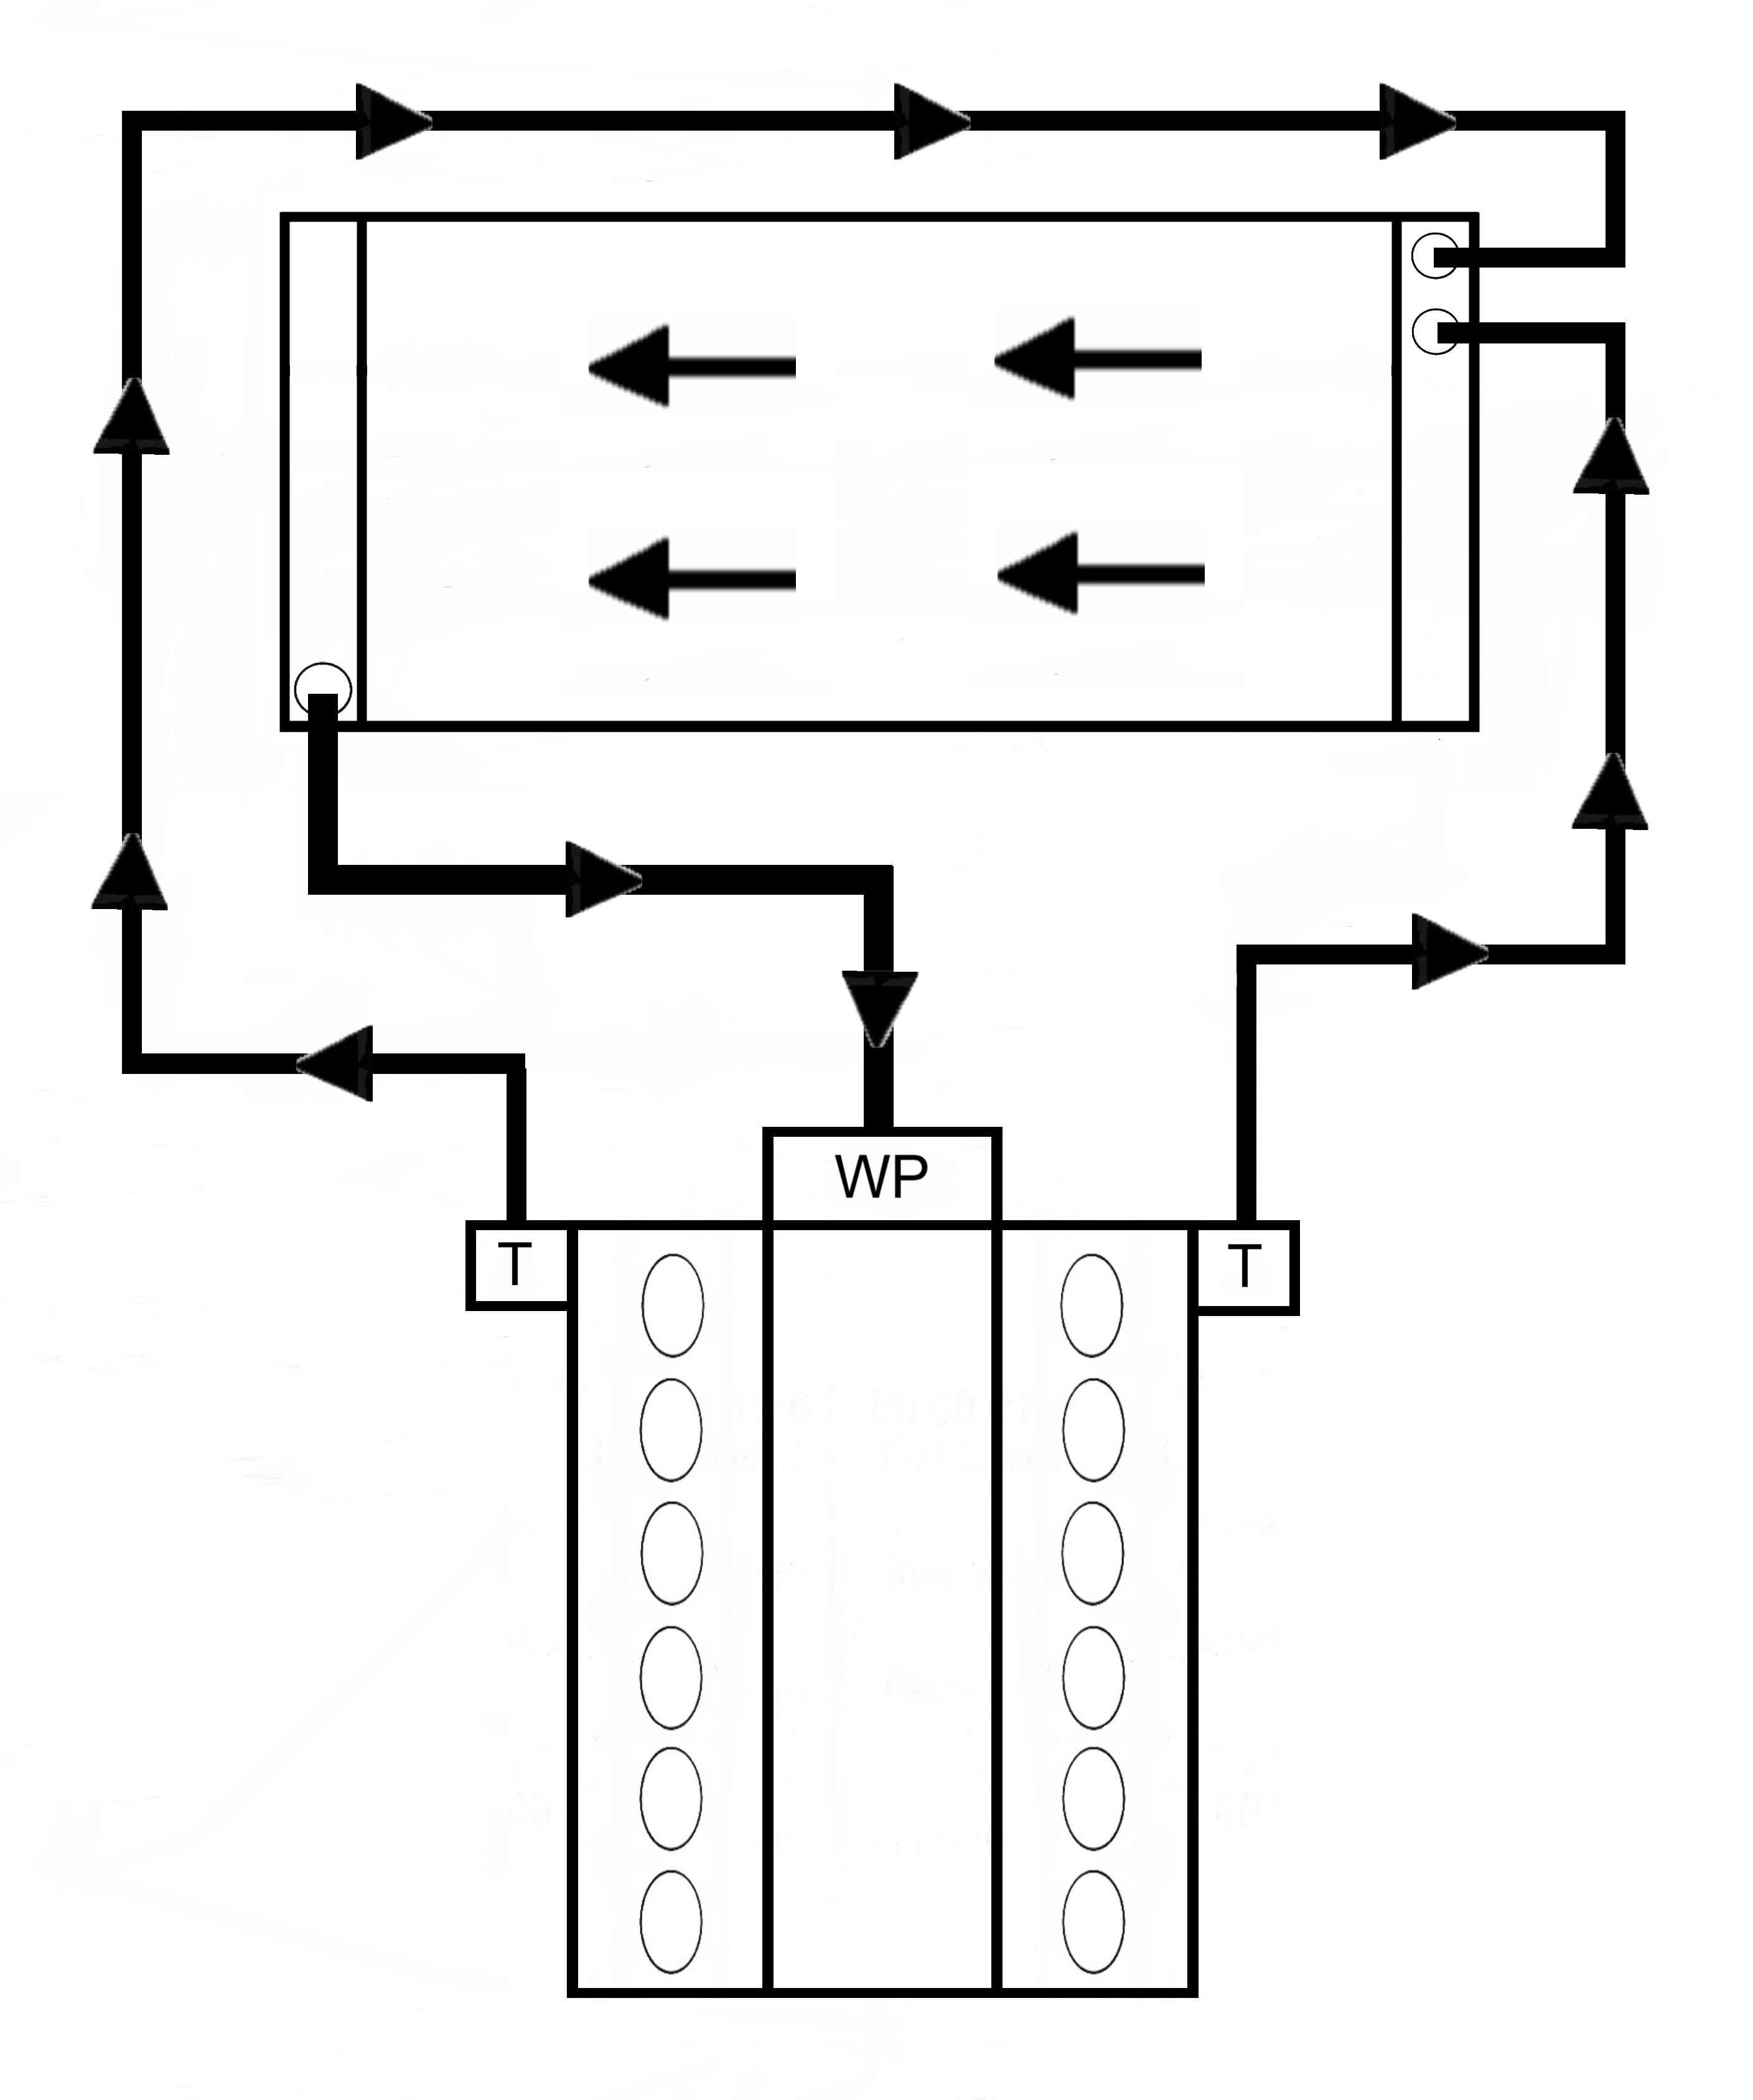 Fig. 2 How a single pass system might be arranged for an XJ12/XJS cooling system.